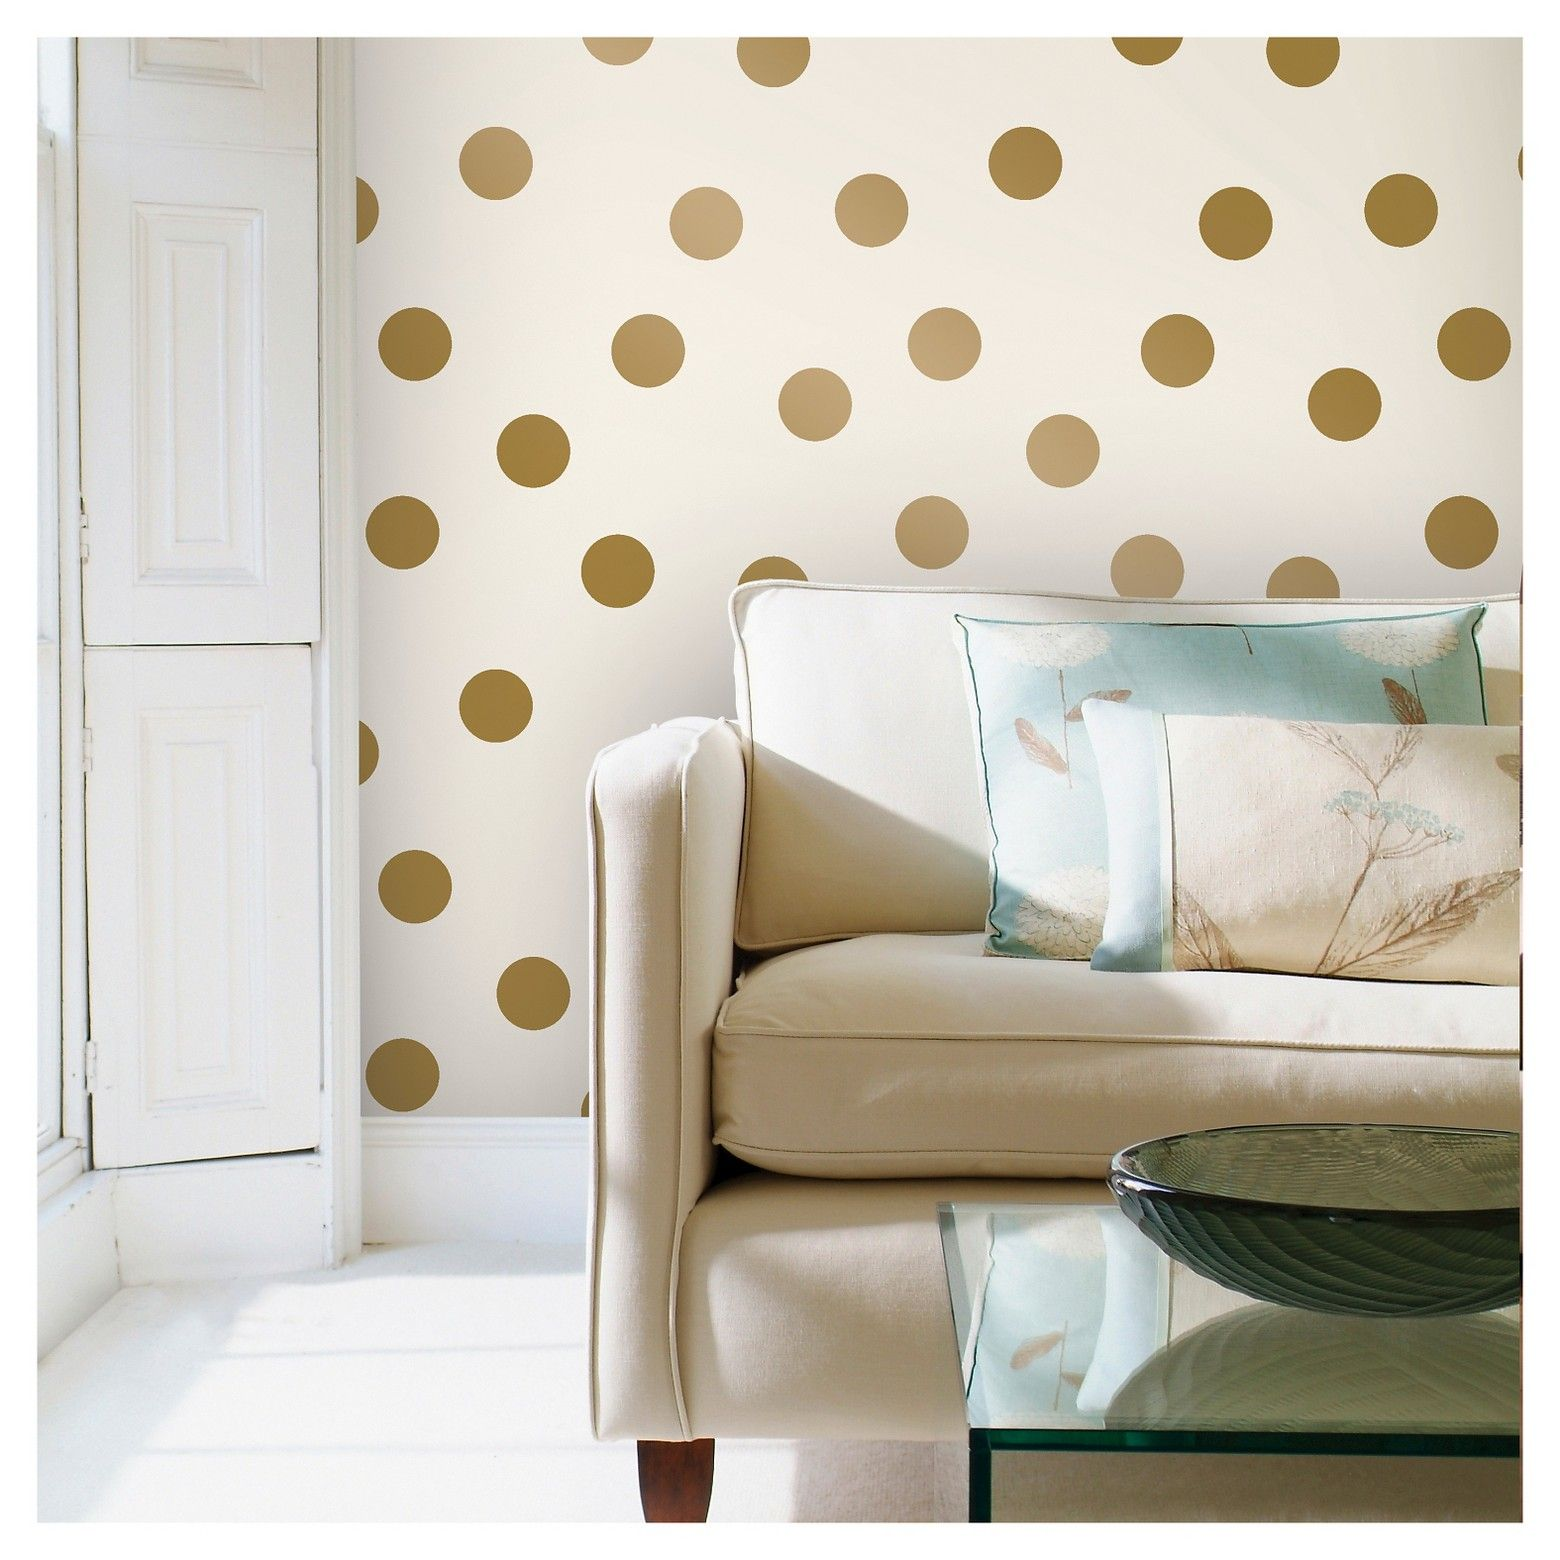 Devine Color Dots Peel Stick Wallpaper Gold White College Wall Decor Peel And Stick Wallpaper Turn Table Vinyl